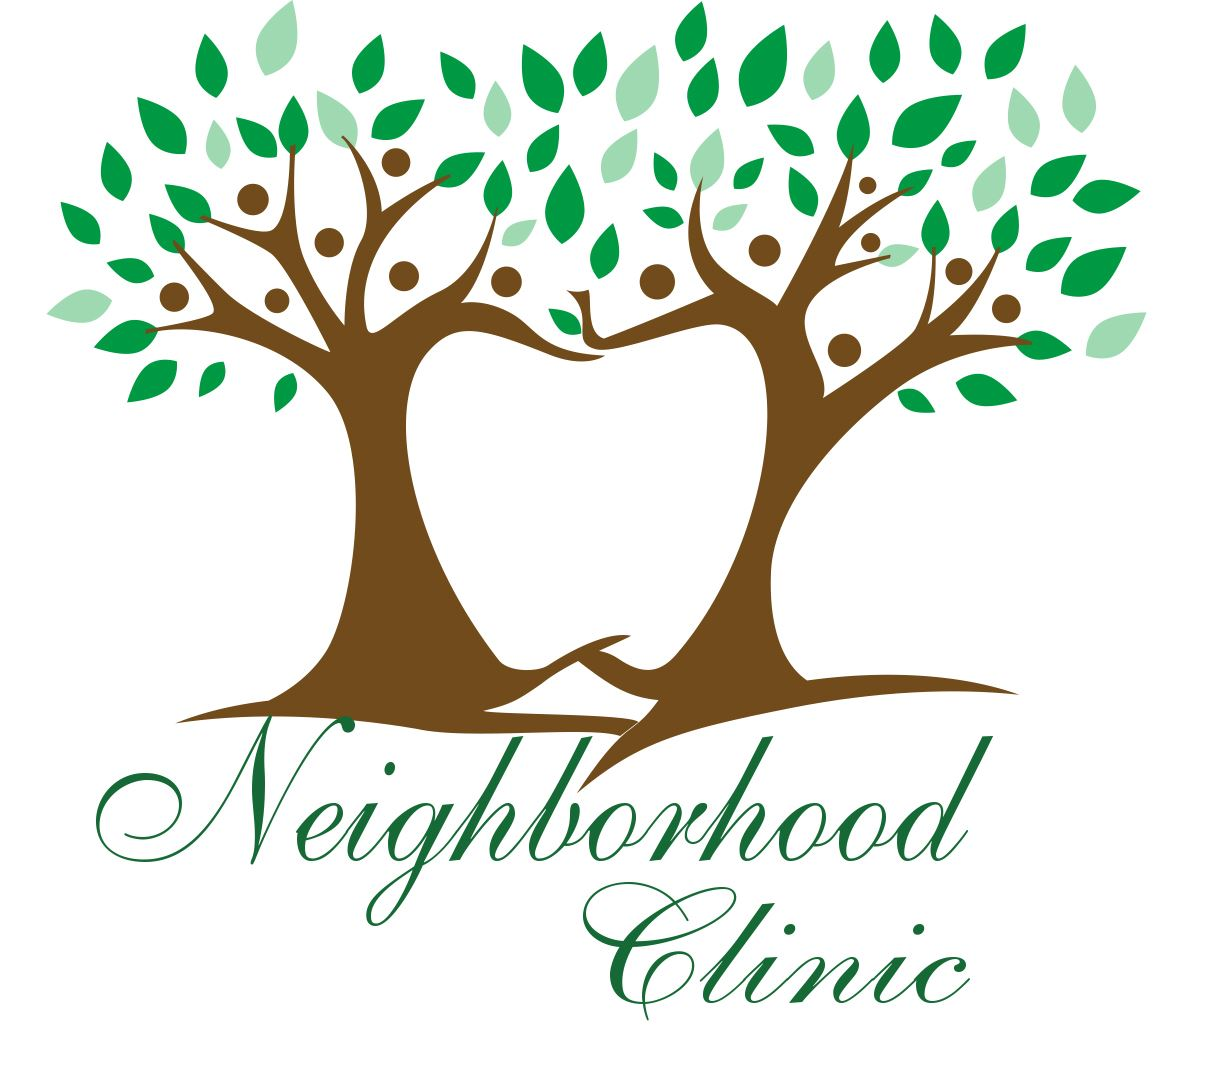 NeighborhoodClinic